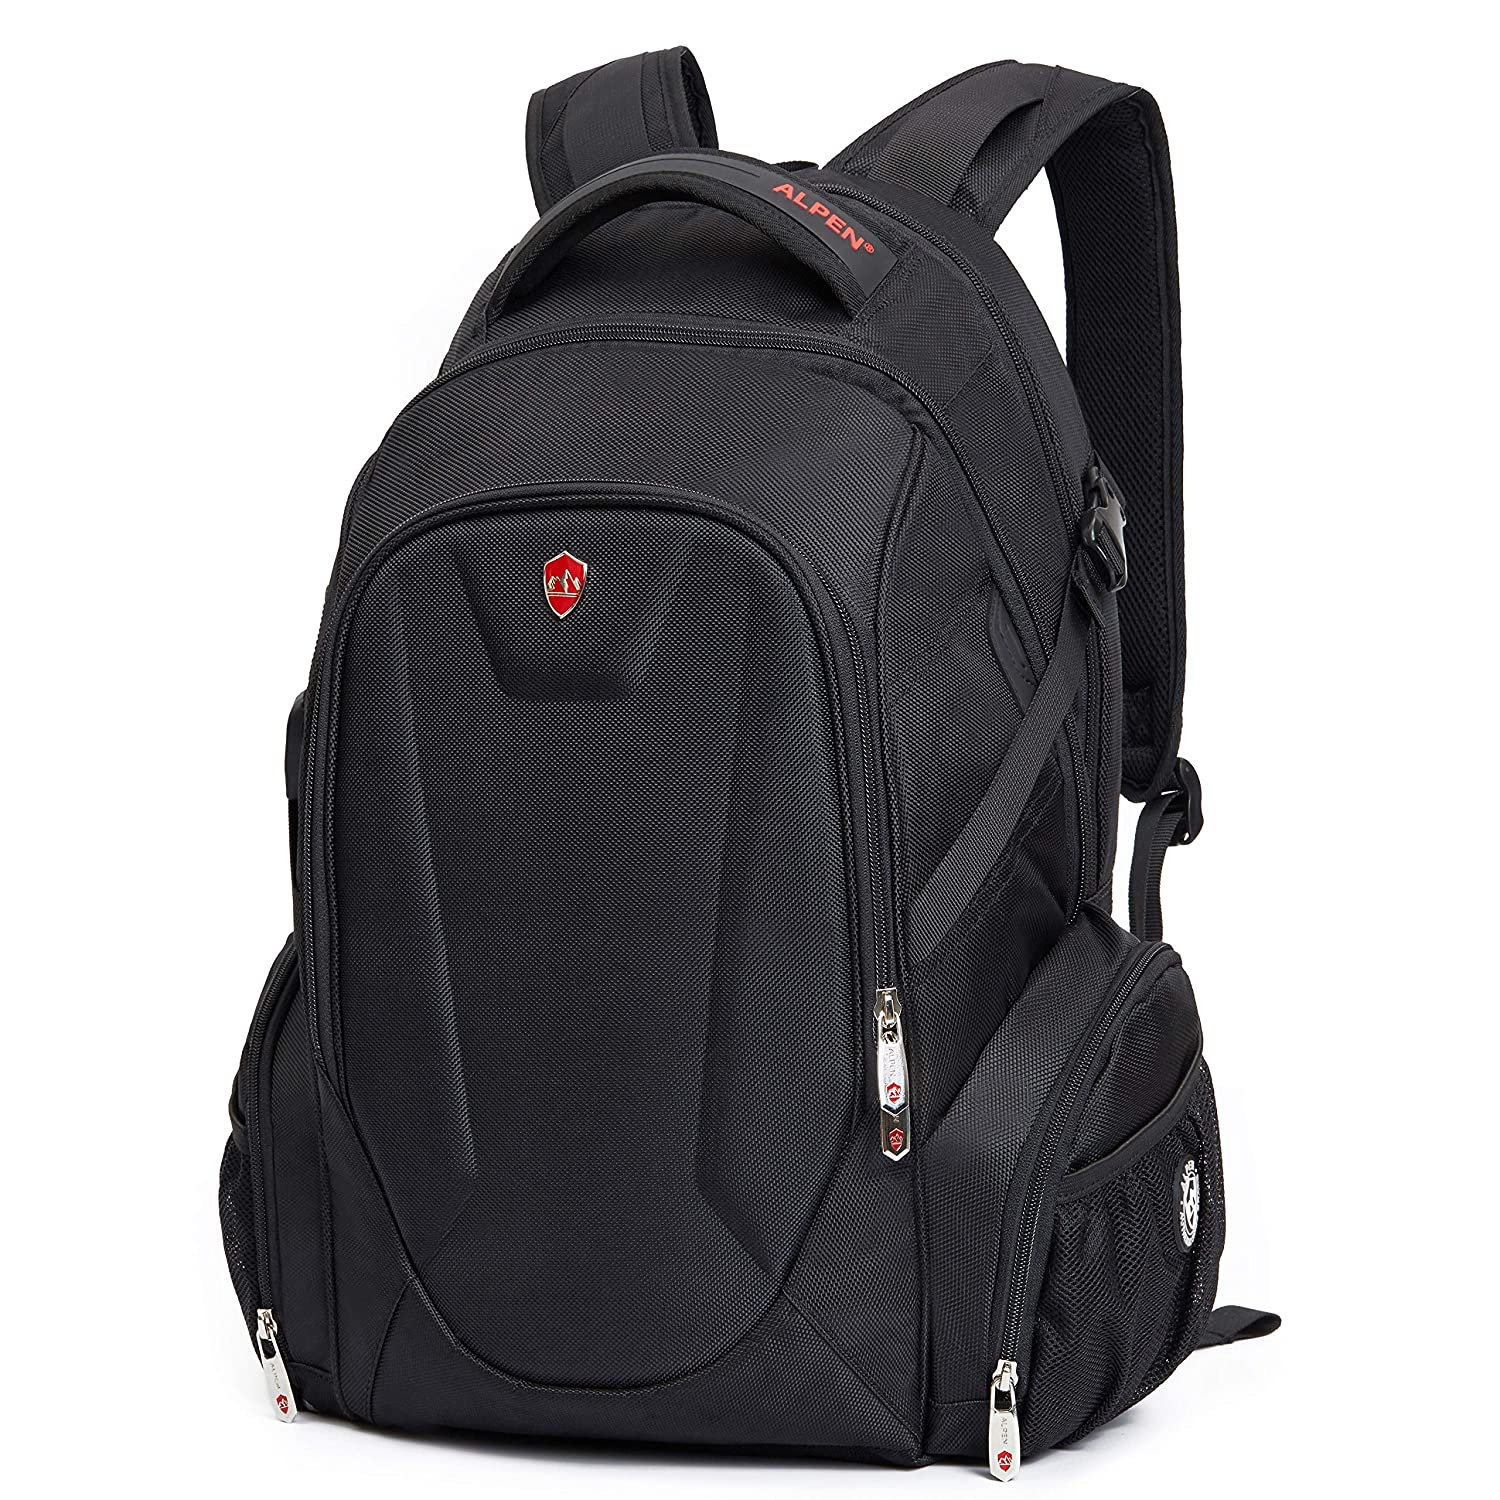 Swiss Alpen - Waterproof Laptop Backpack